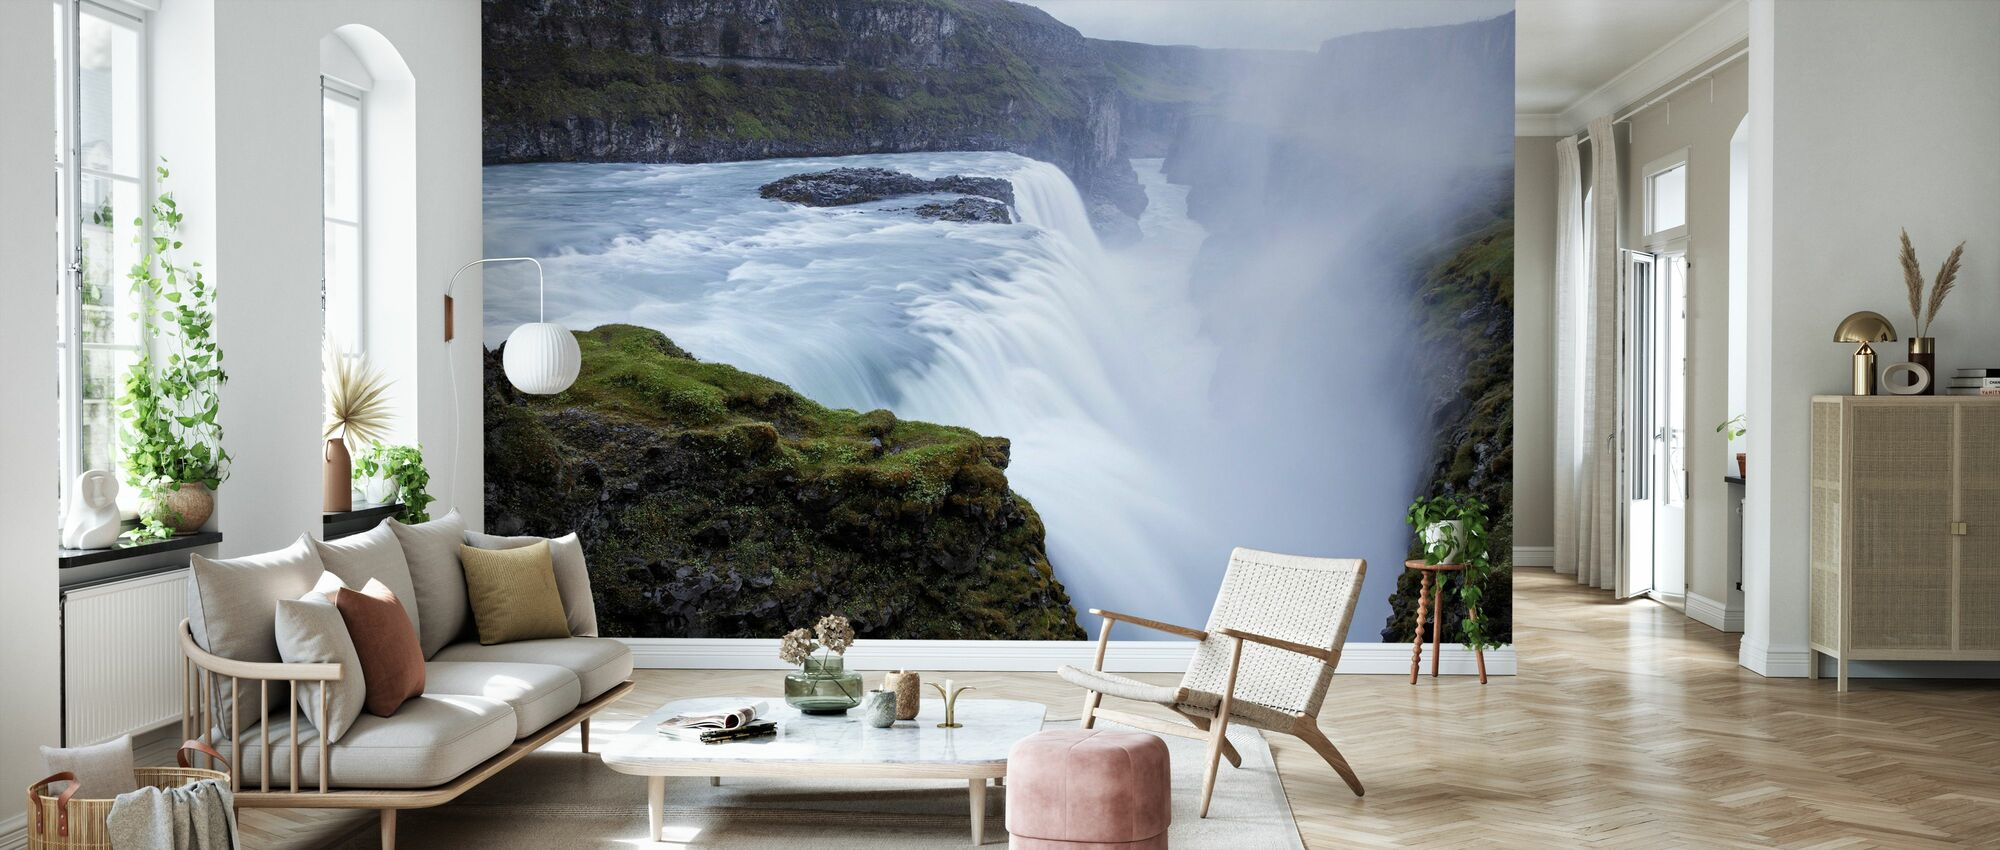 UK W#44 Peel and Stick Photo Wallpaper Removable Wall Wallpaper Gulfoss Falls in Iceland Wall Mural Wall Decal Wall Mural Non Woven